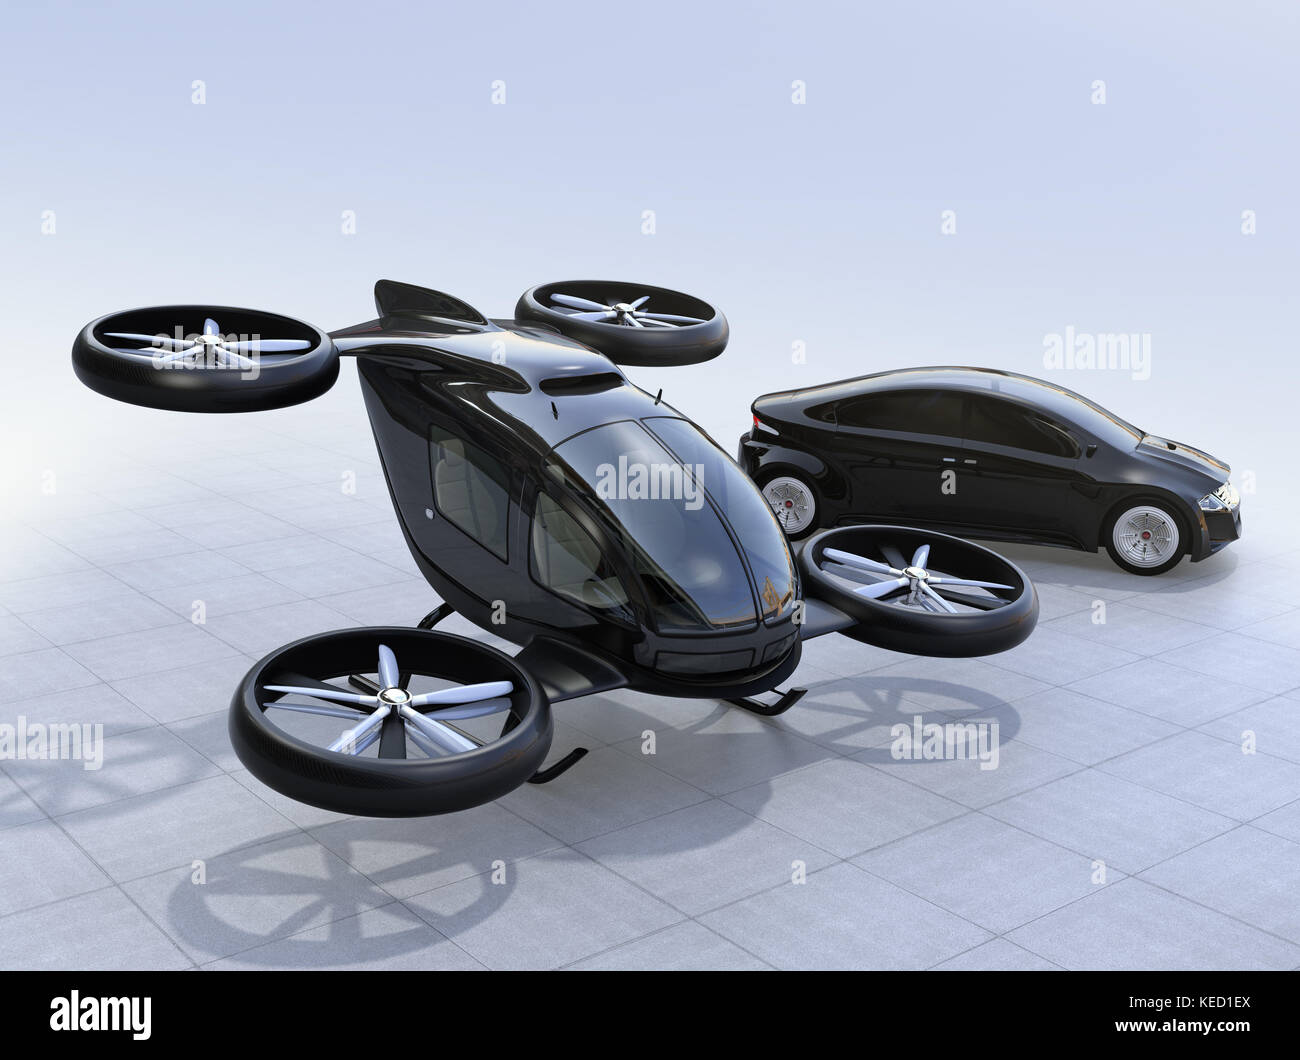 self driving car and passenger drone parking on the ground 3d stock photo 163785074 alamy. Black Bedroom Furniture Sets. Home Design Ideas